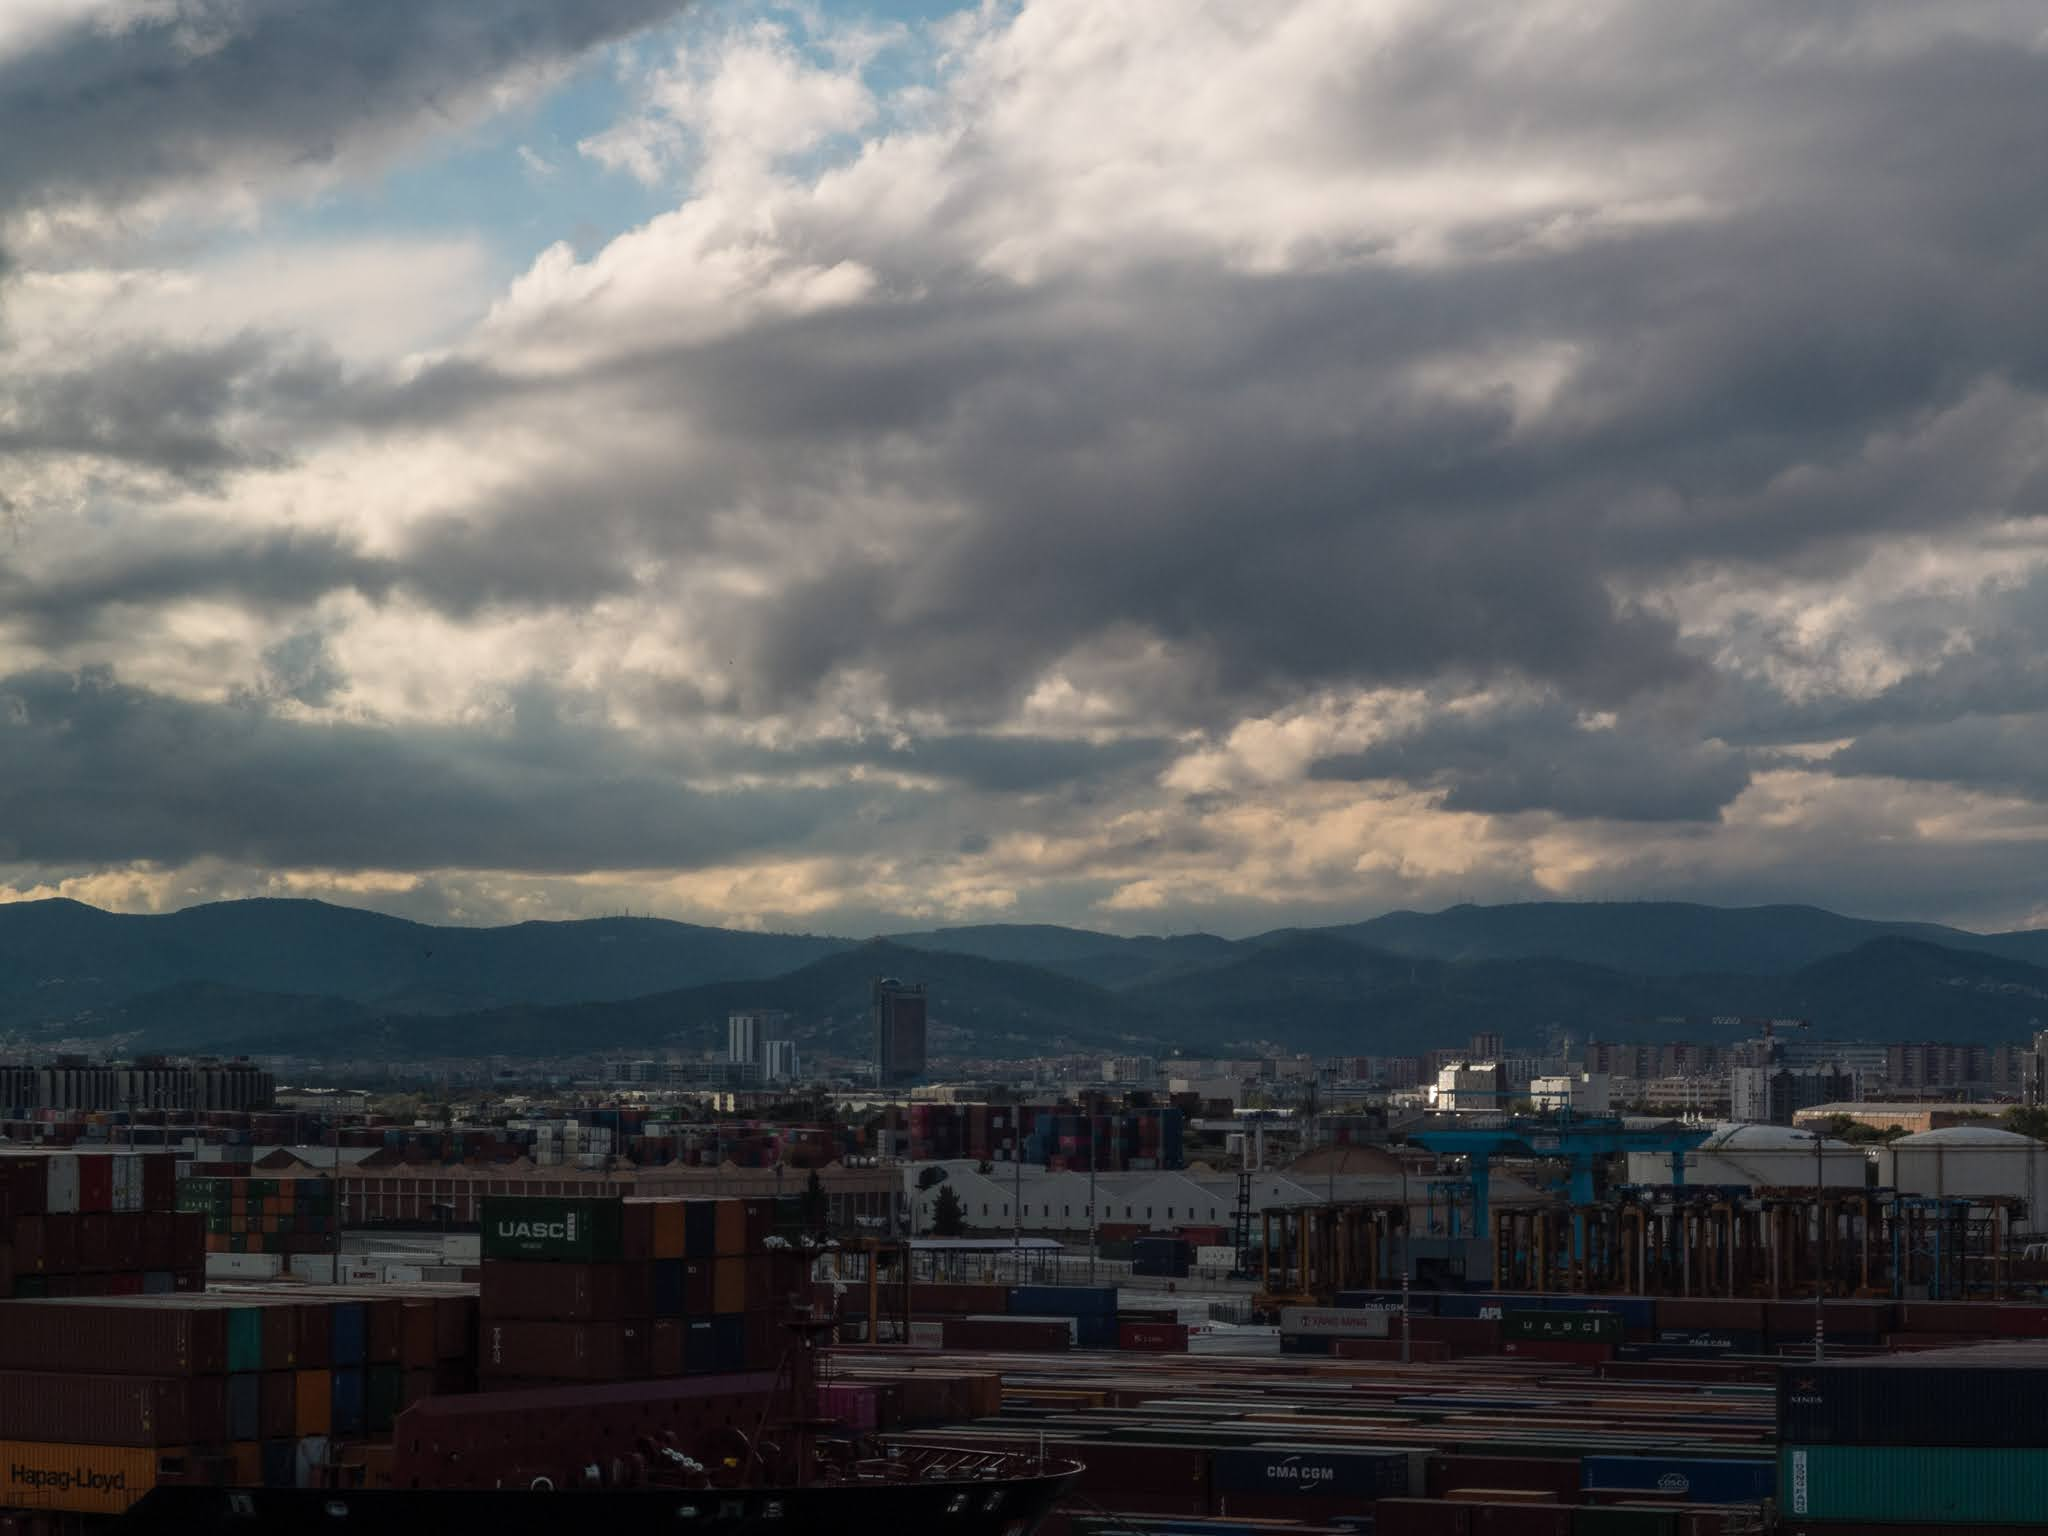 View of mountains from the port of Barcelona, Spain with containers in the foreground.